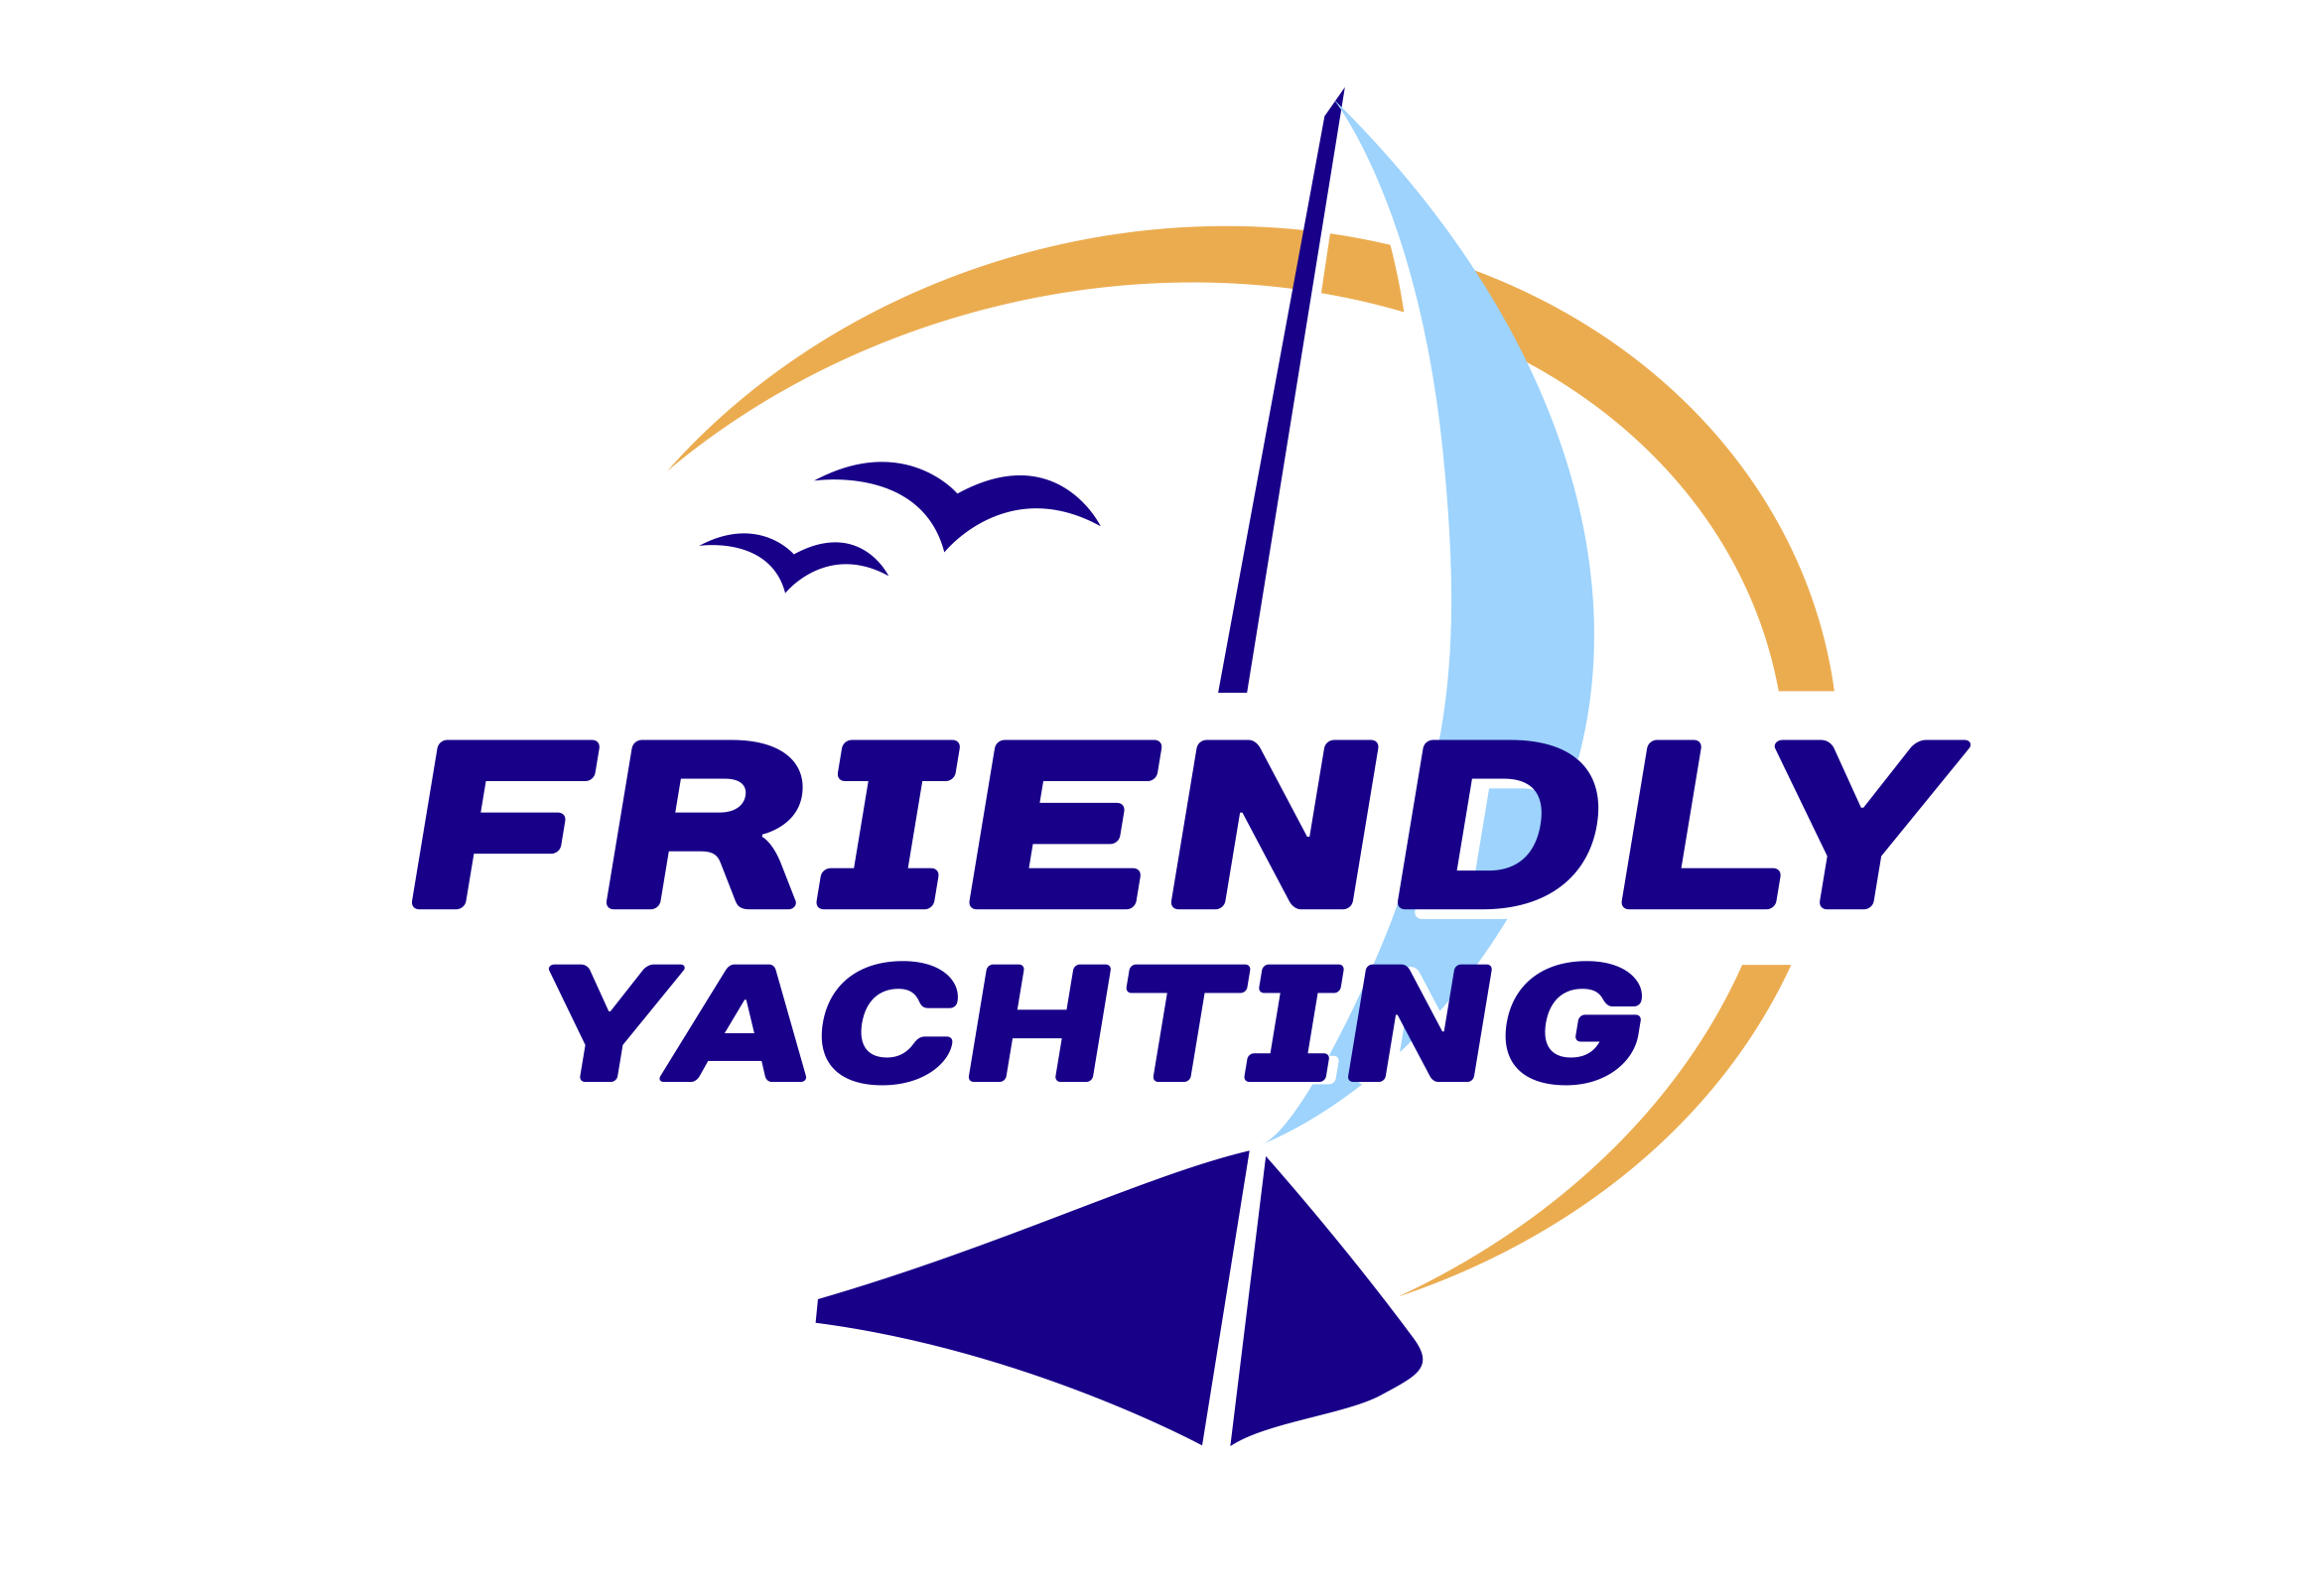 Friendly Yachting